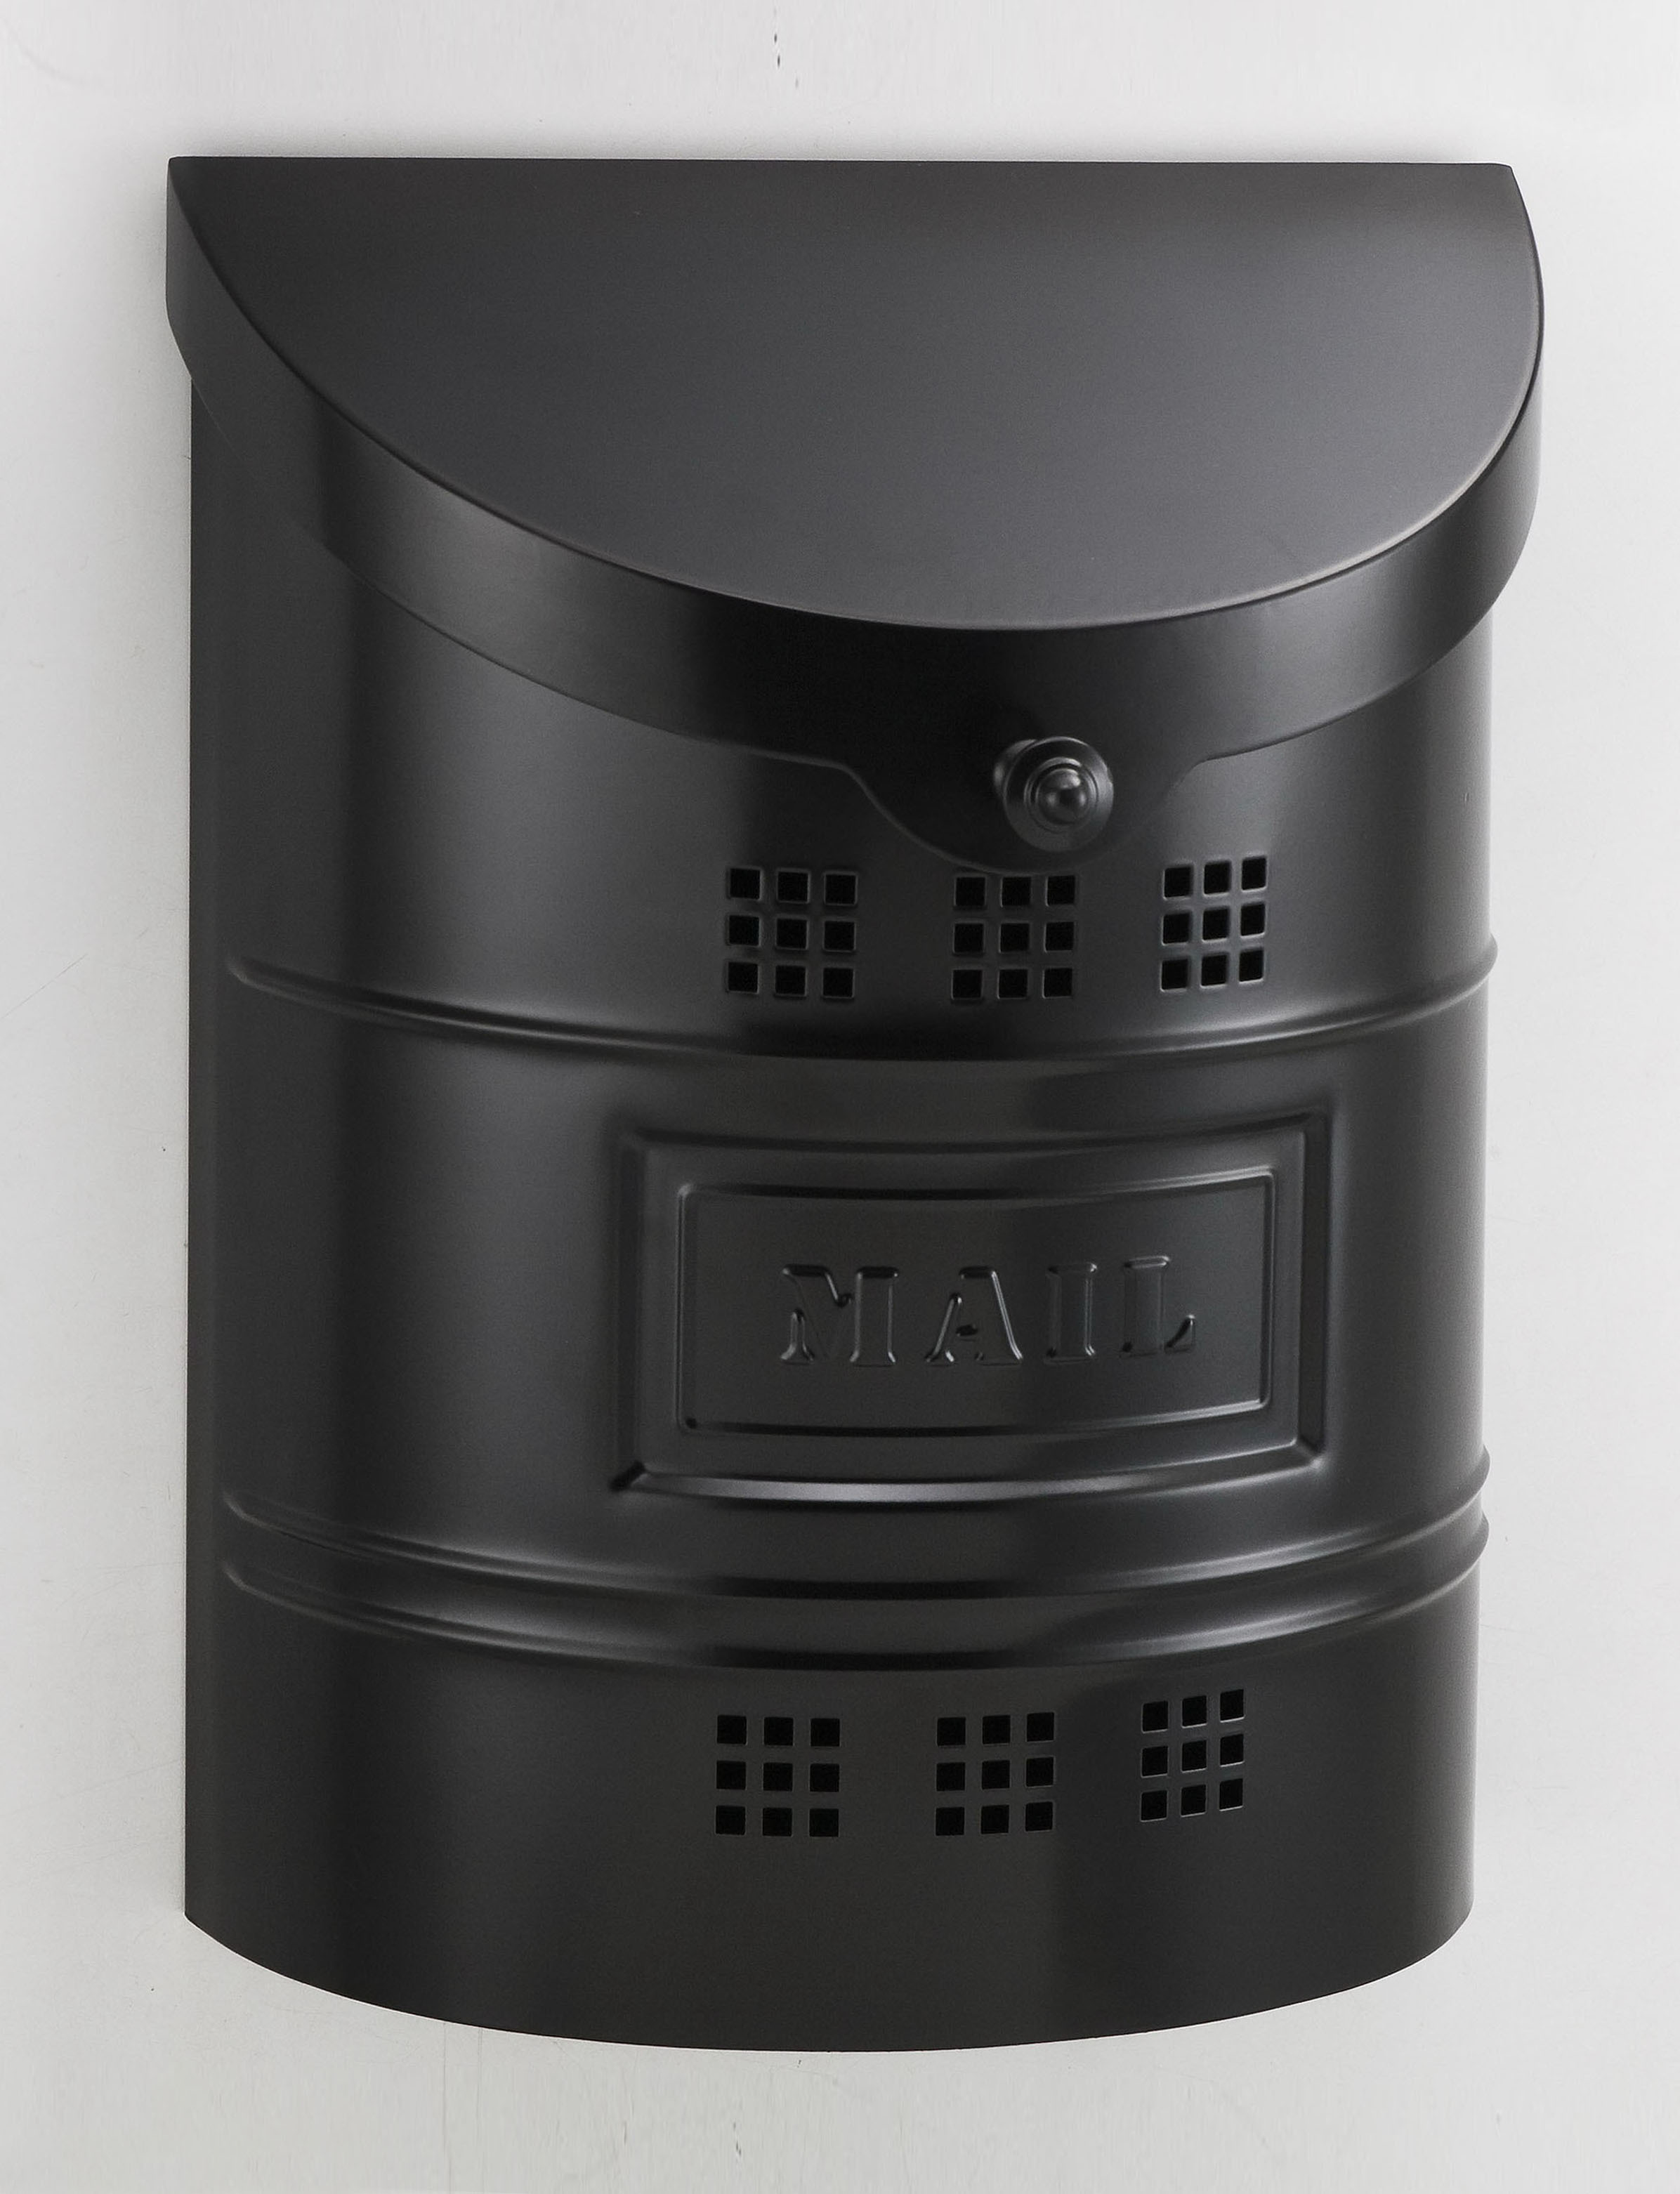 212E2BK Barrel drum cut out ecco mailbox. Size: 11.25 W 14.5 H 4.5 D. Hardware included. Shown in matte black. Smaller size available.